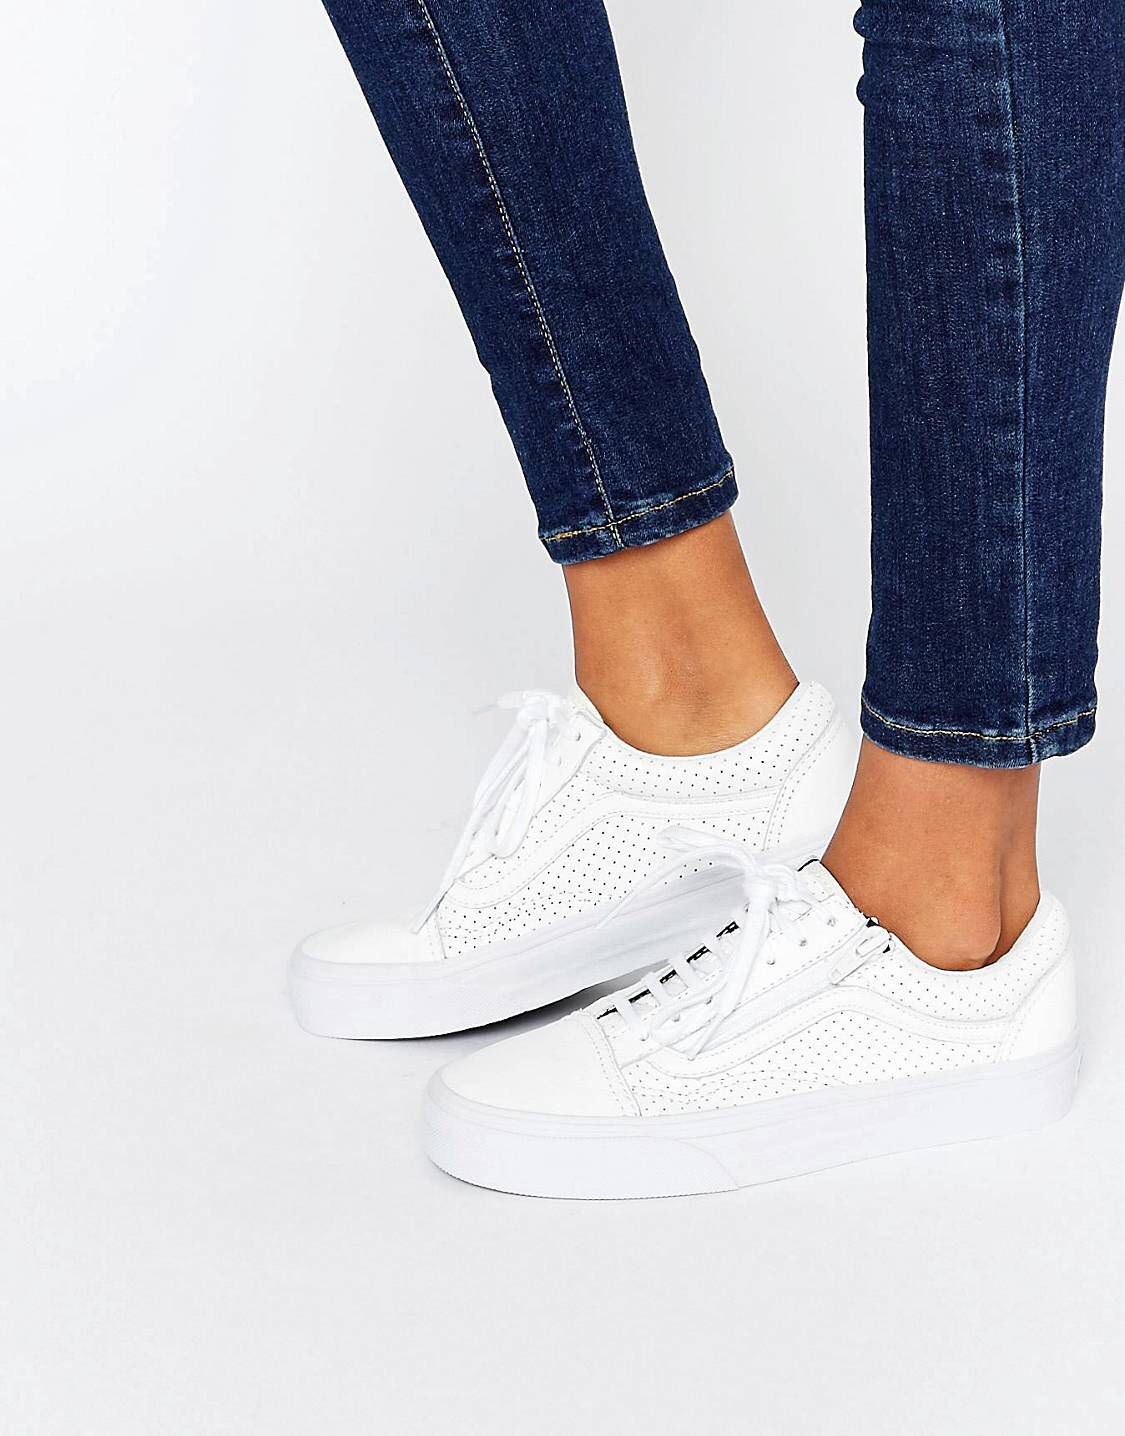 d5d32d3267 Vans Old Skool Zip Perforated Leather Trainer